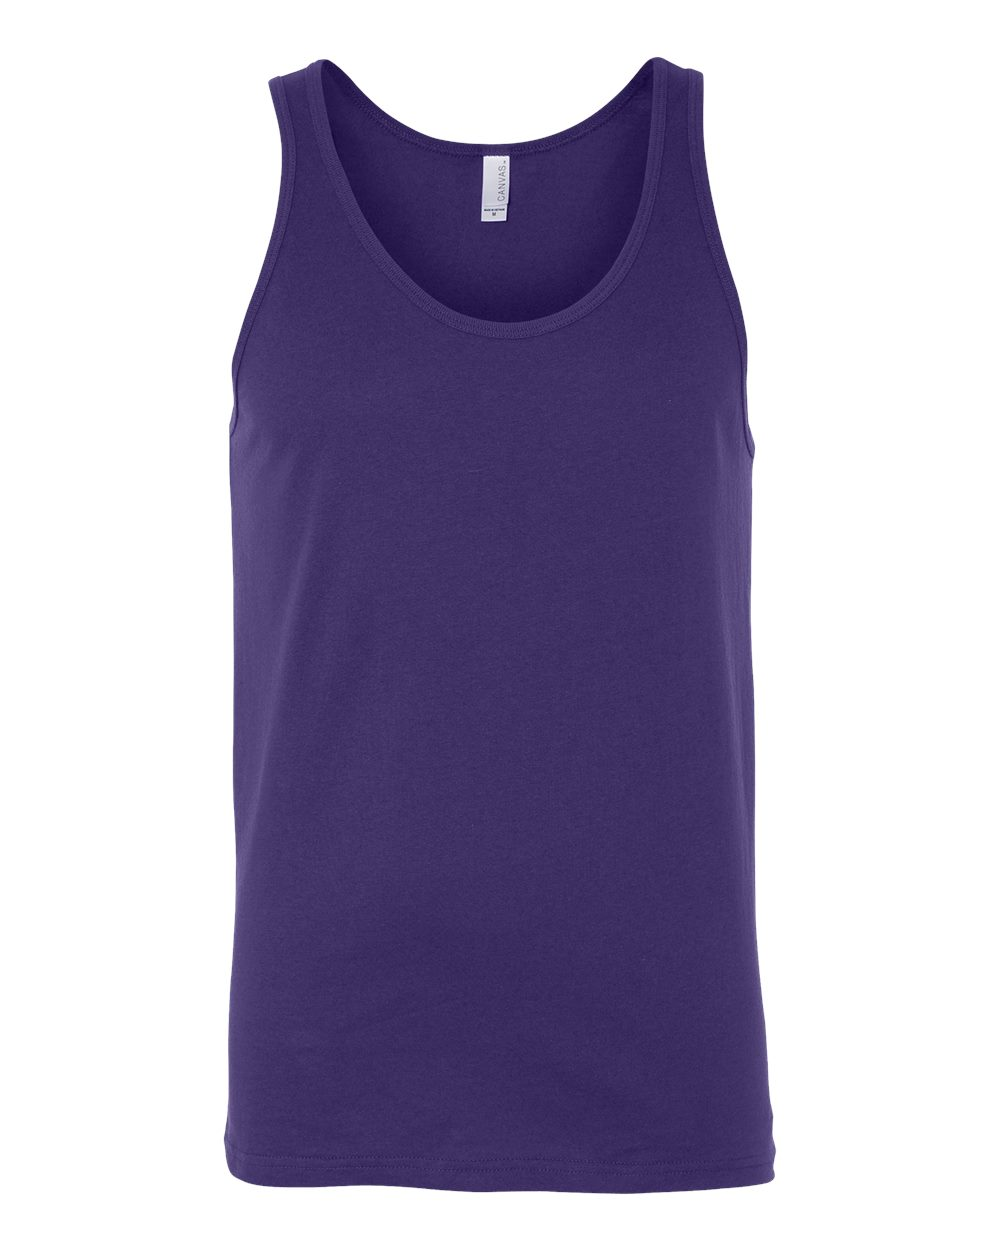 Bella_+_Canvas_3480_Team_Purple_Front_High.jpg